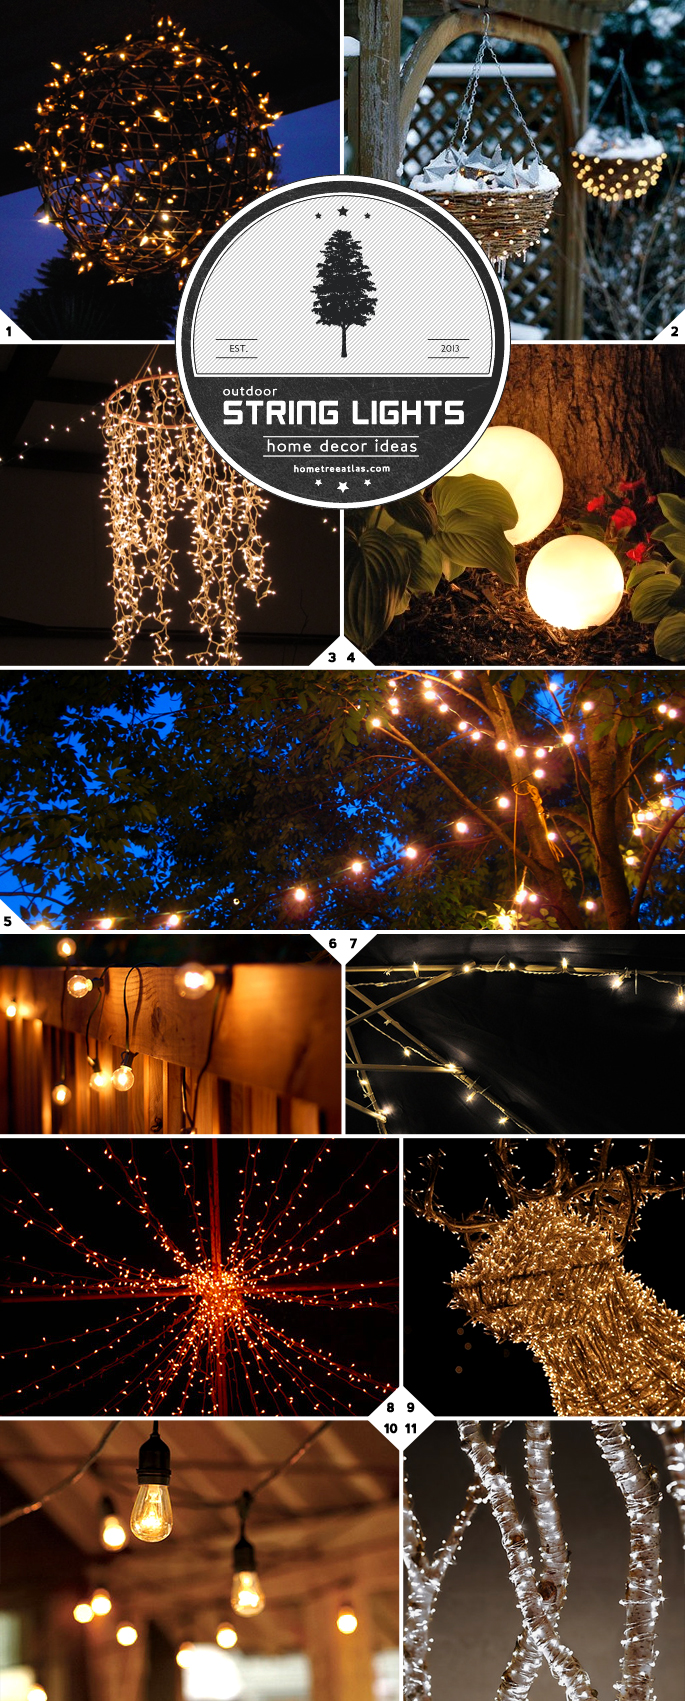 Home decor ideas creative ways of using string lights outdoors home decor ideas creative ways of using string lights outdoors workwithnaturefo